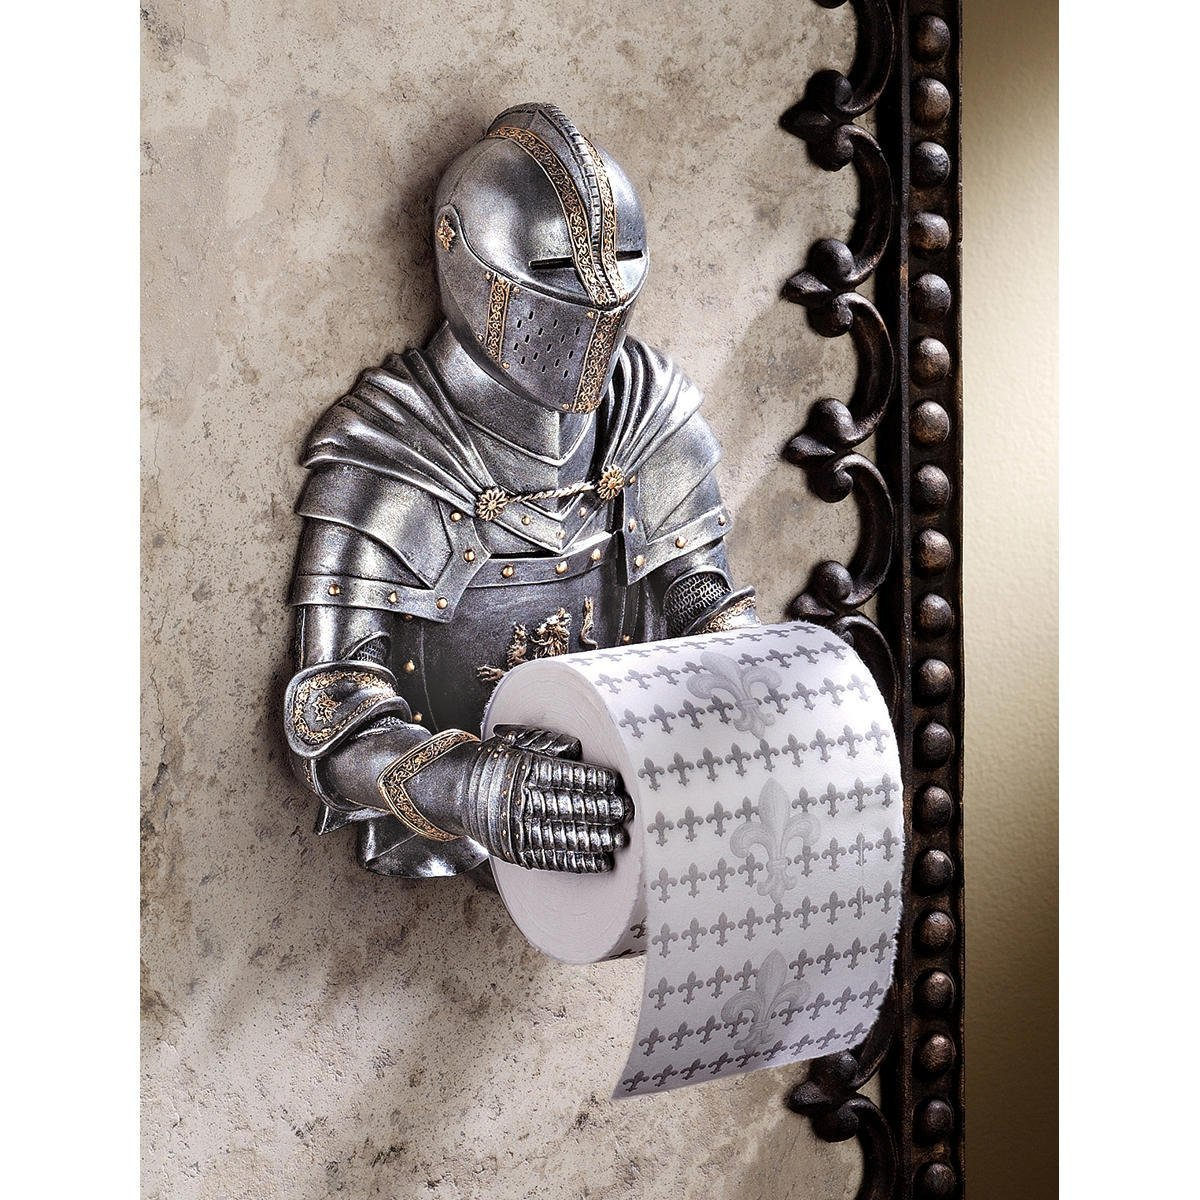 Want To Turn You Bathroom Into Your Bath Realm?